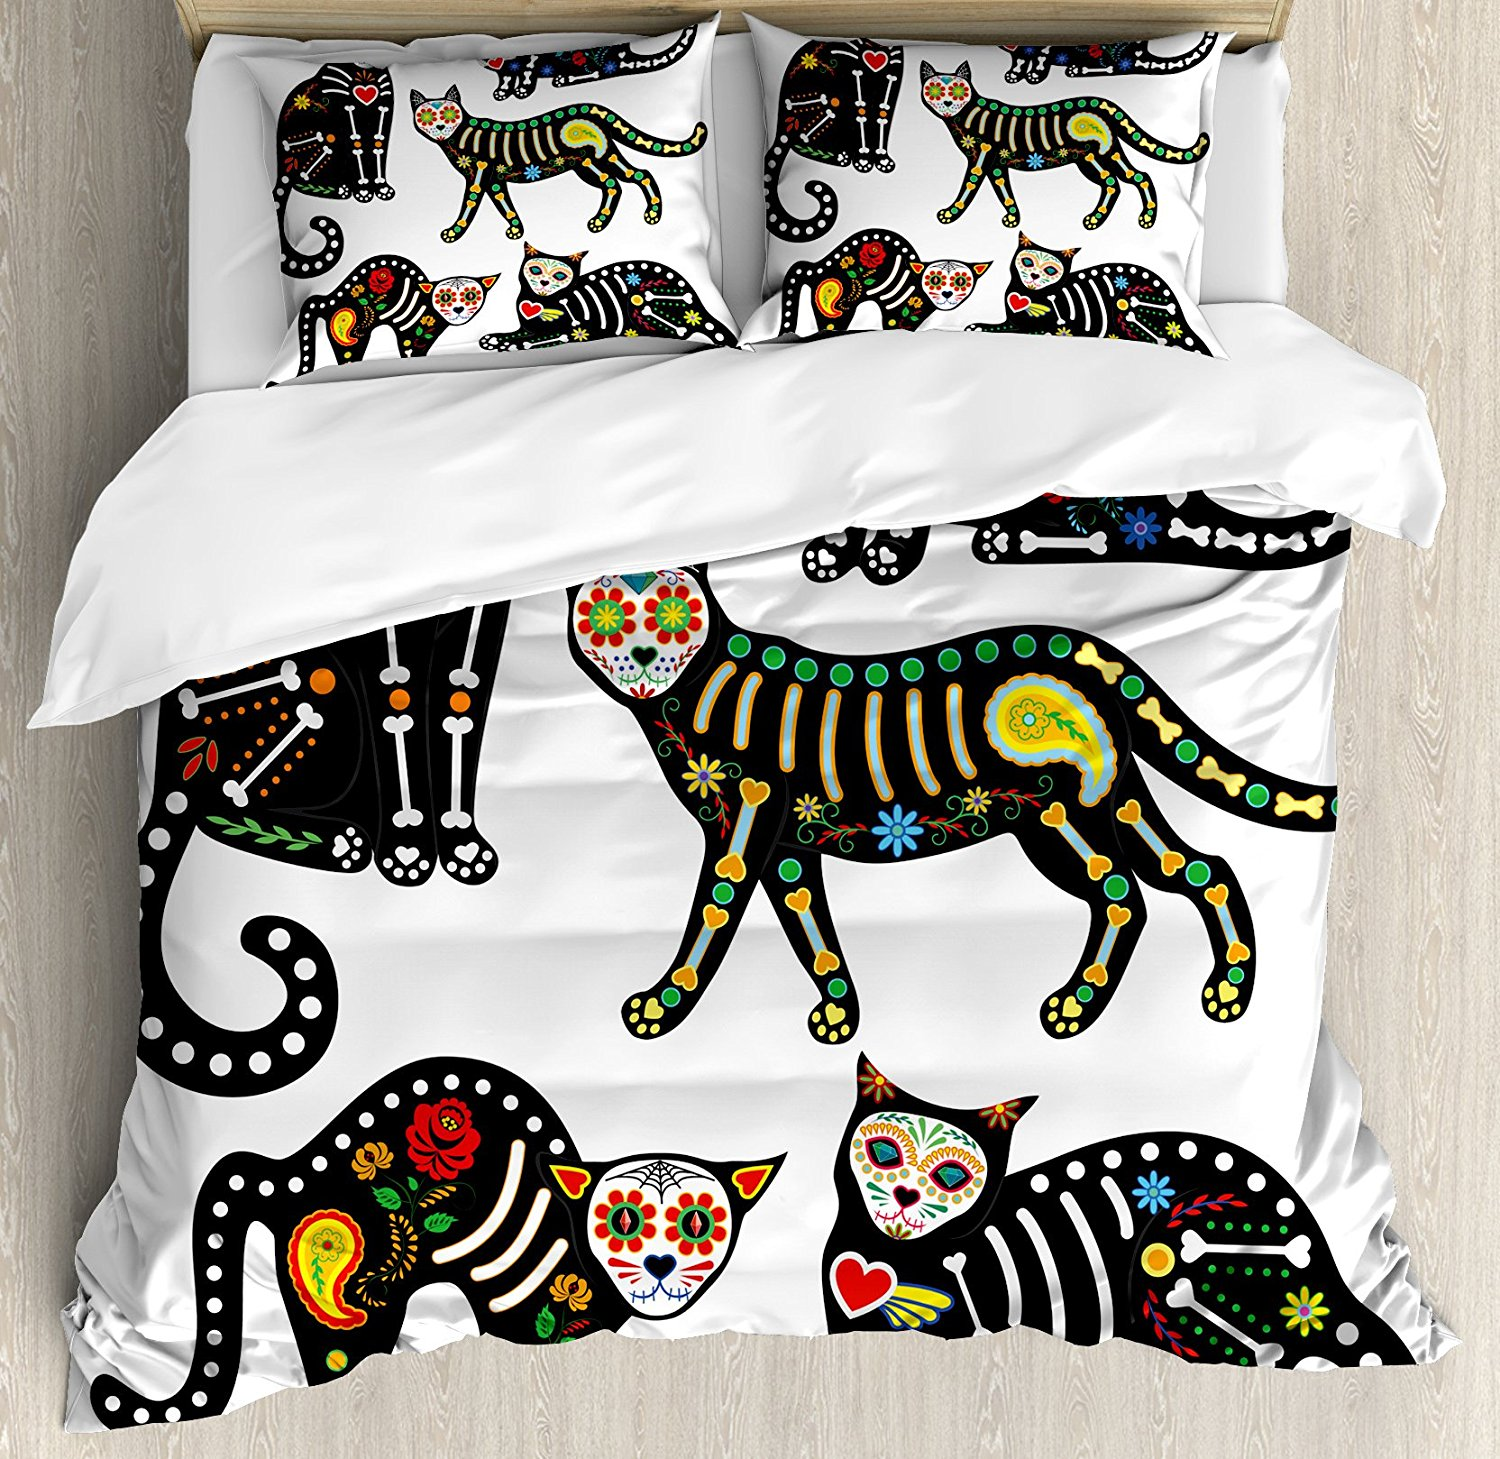 Sugar Skull Decor Duvet Cover Set Calavera Ornate Black Cats in Mexican Style Holiday the Day of the Dead 4 Piece Bedding Set